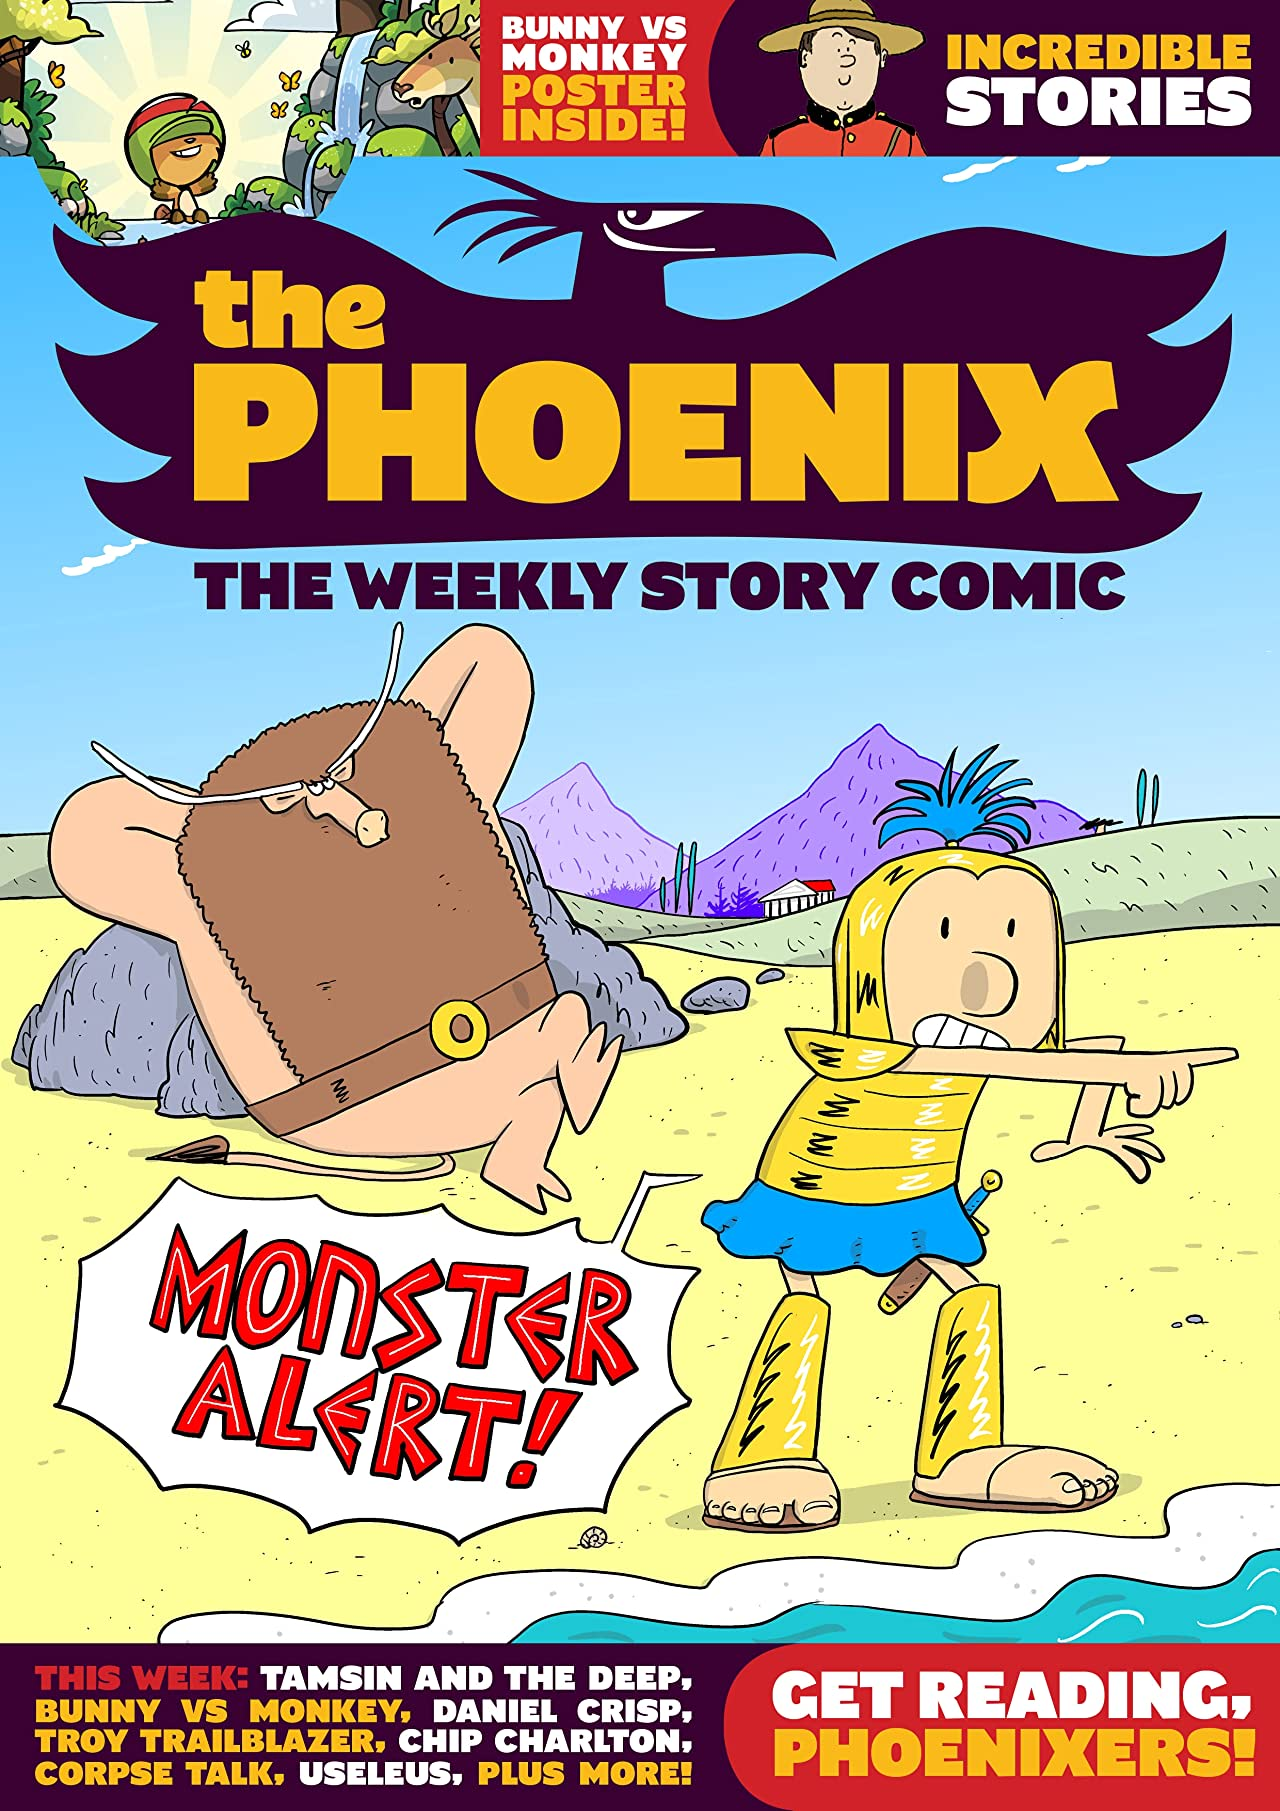 The Phoenix #146: The Weekly Story Comic